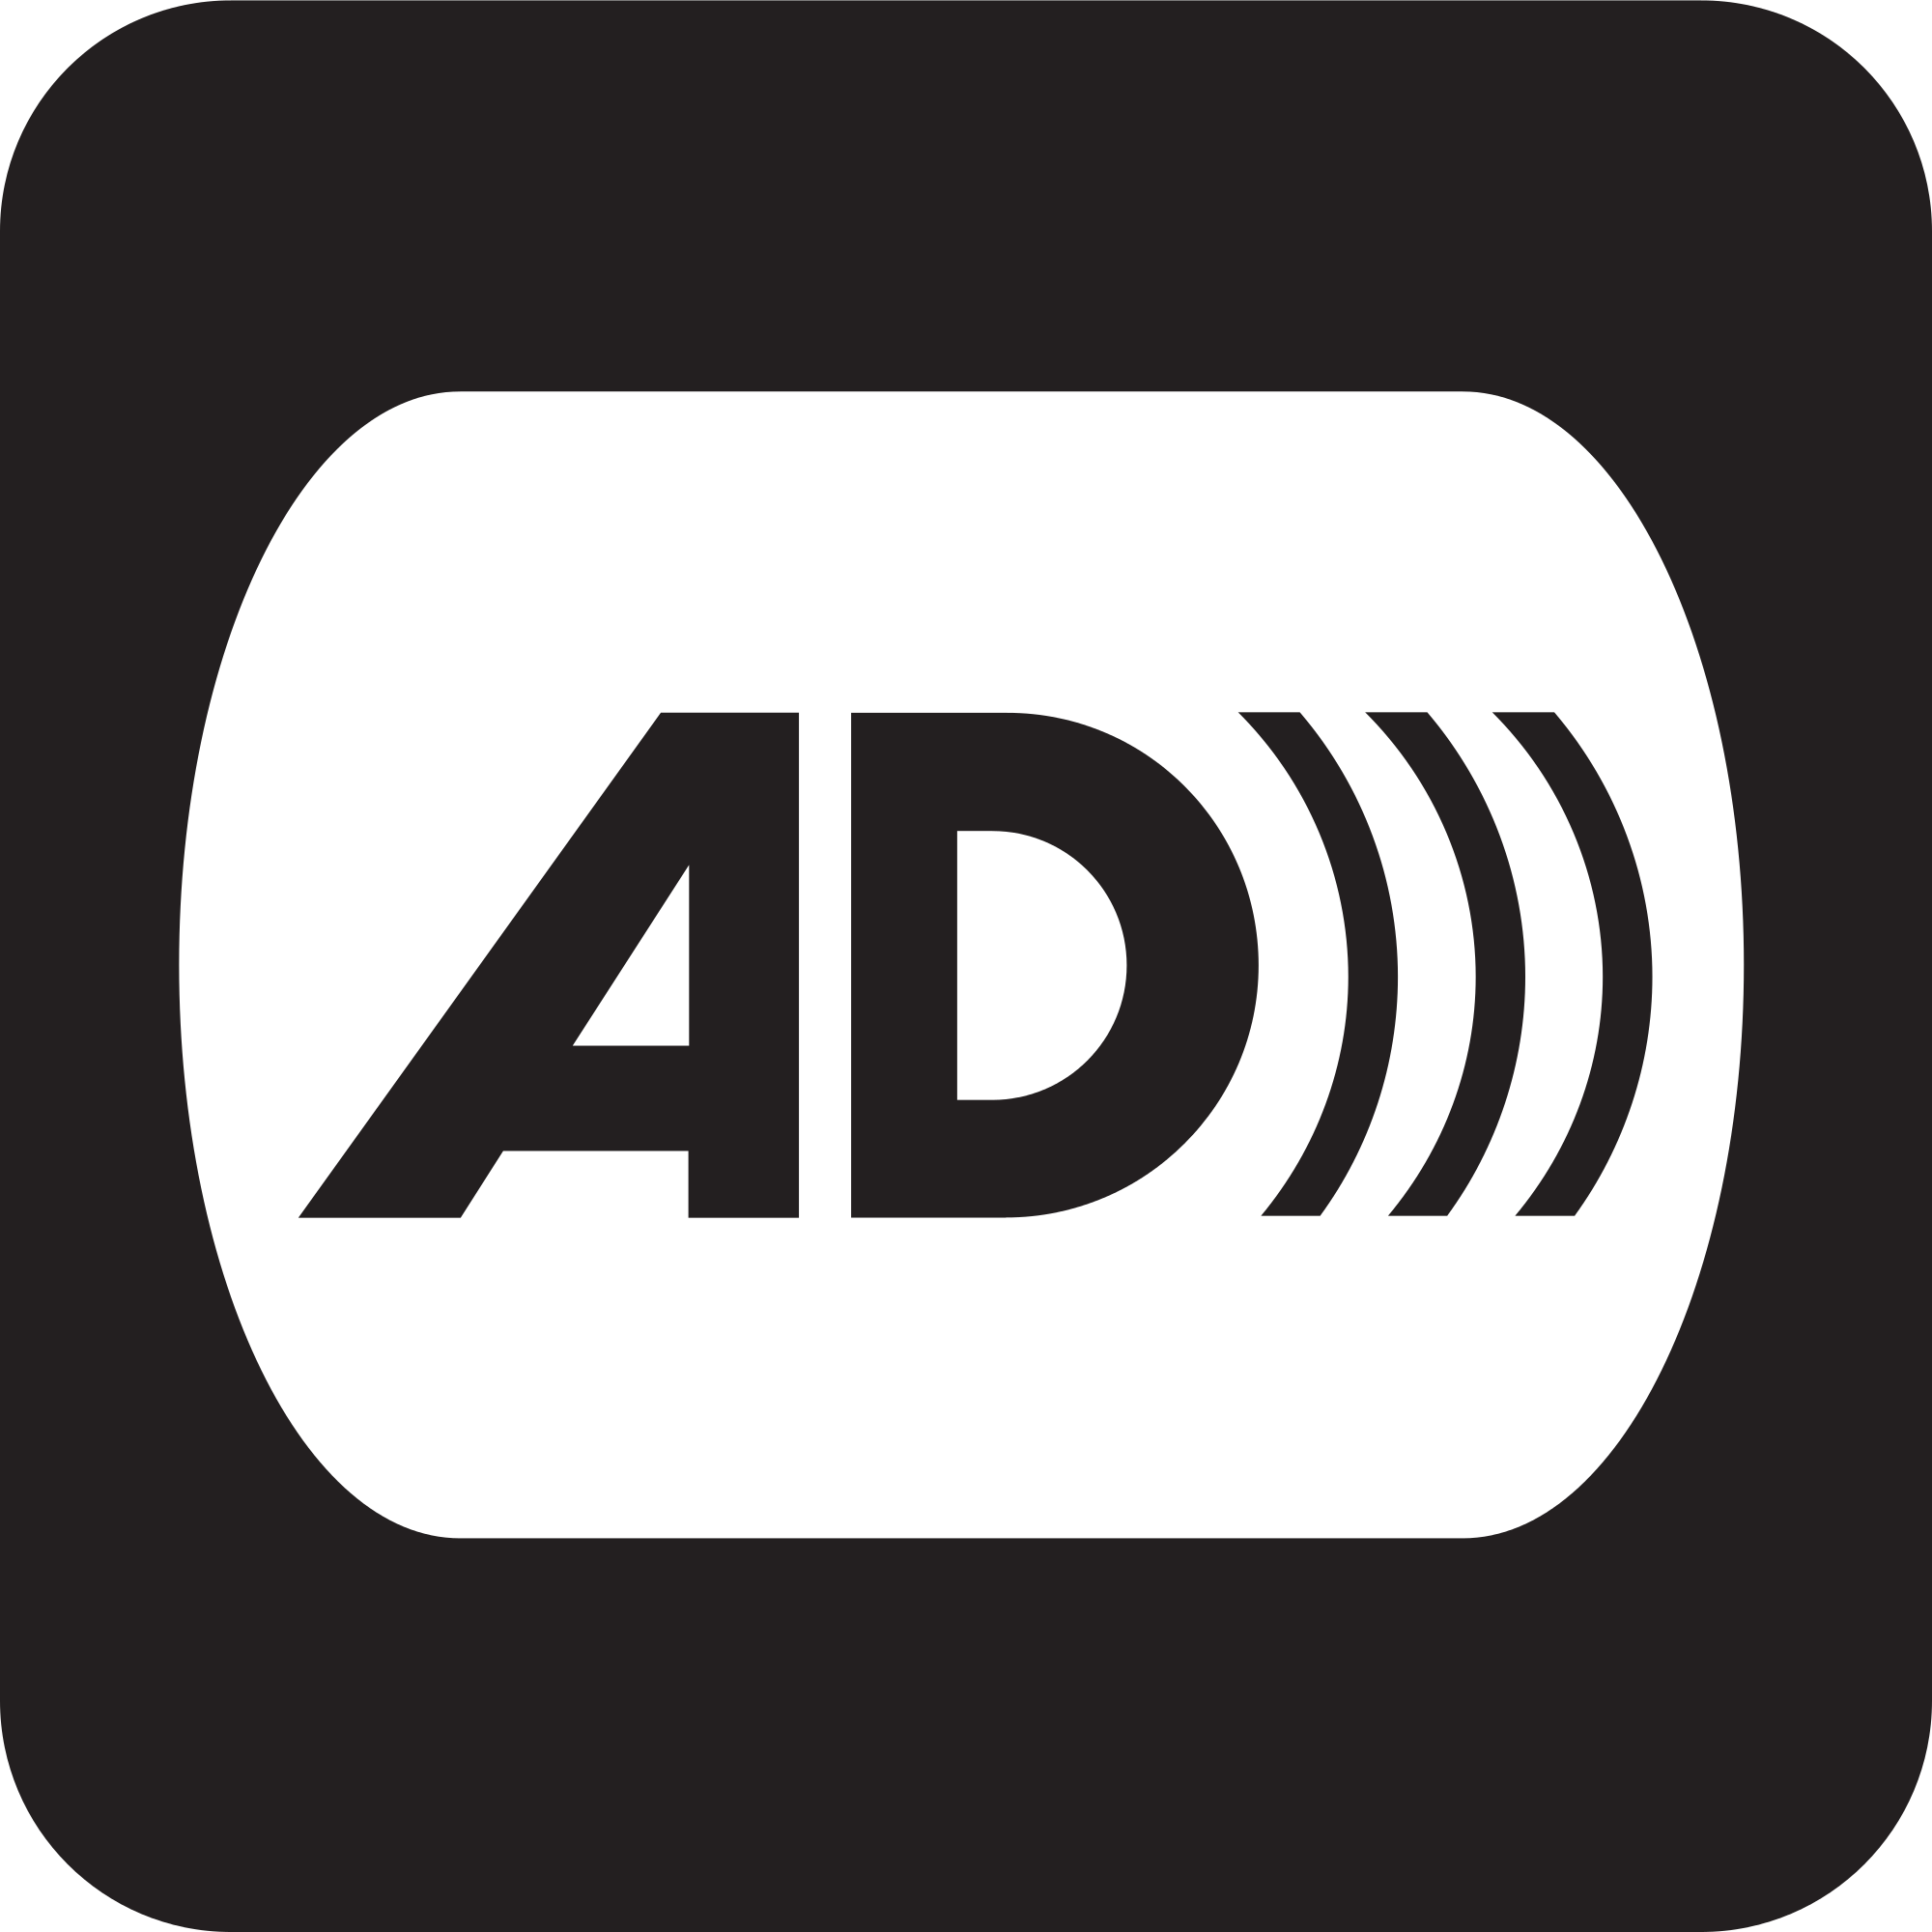 Audio svg #11, Download drawings